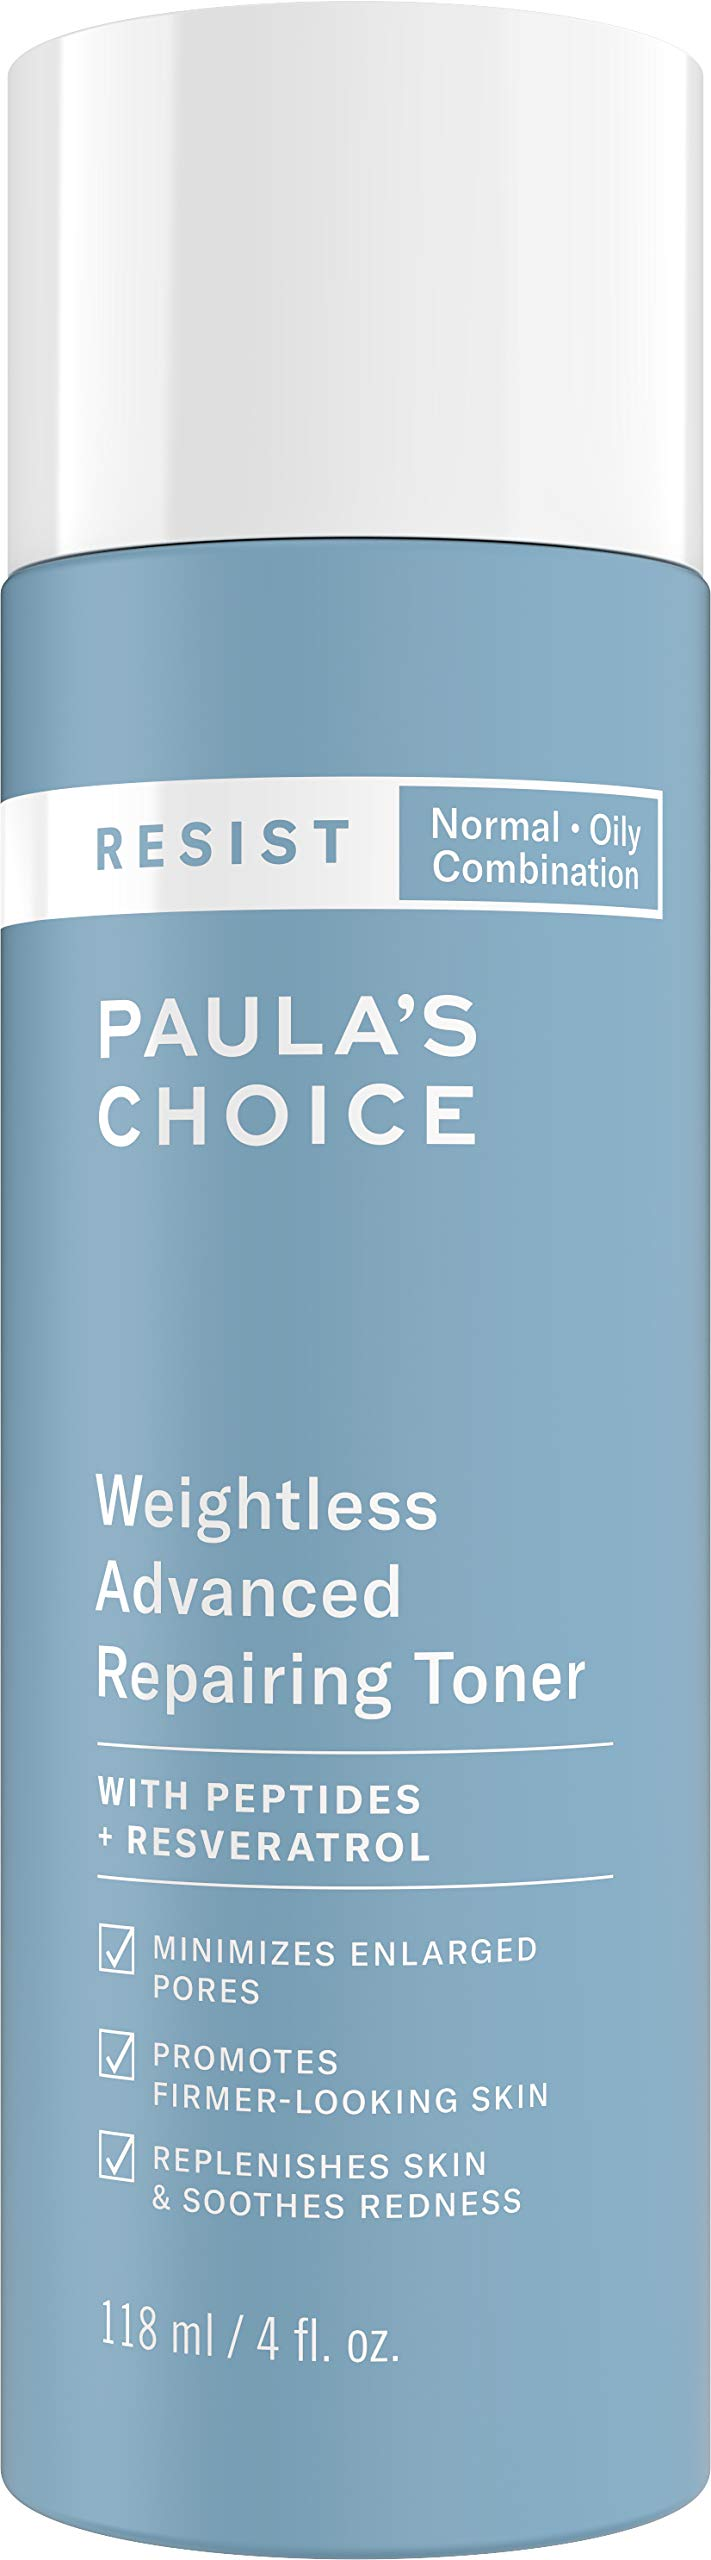 Paula's Choice RESIST Weightless Advanced Repairing Toner, Niacinamide & Hyaluronic Acid, Wrinkles & Large Pores, Oily Skin, 4 Ounce by Paula's Choice